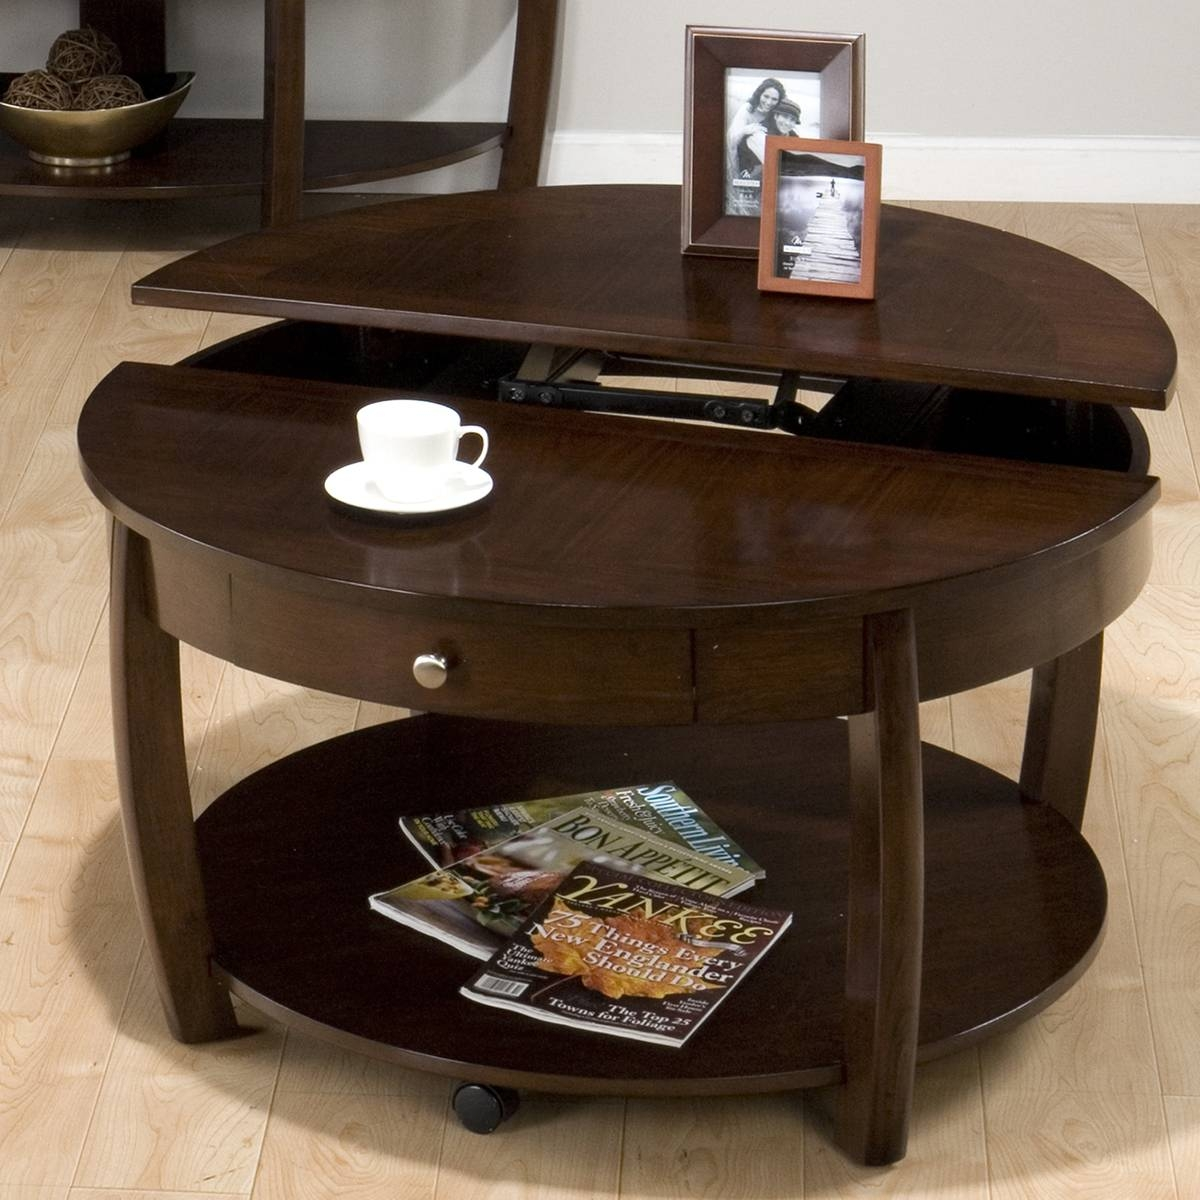 Small Round Coffee Table With Storage – Starrkingschool Intended For Small Circular Coffee Table (View 14 of 30)